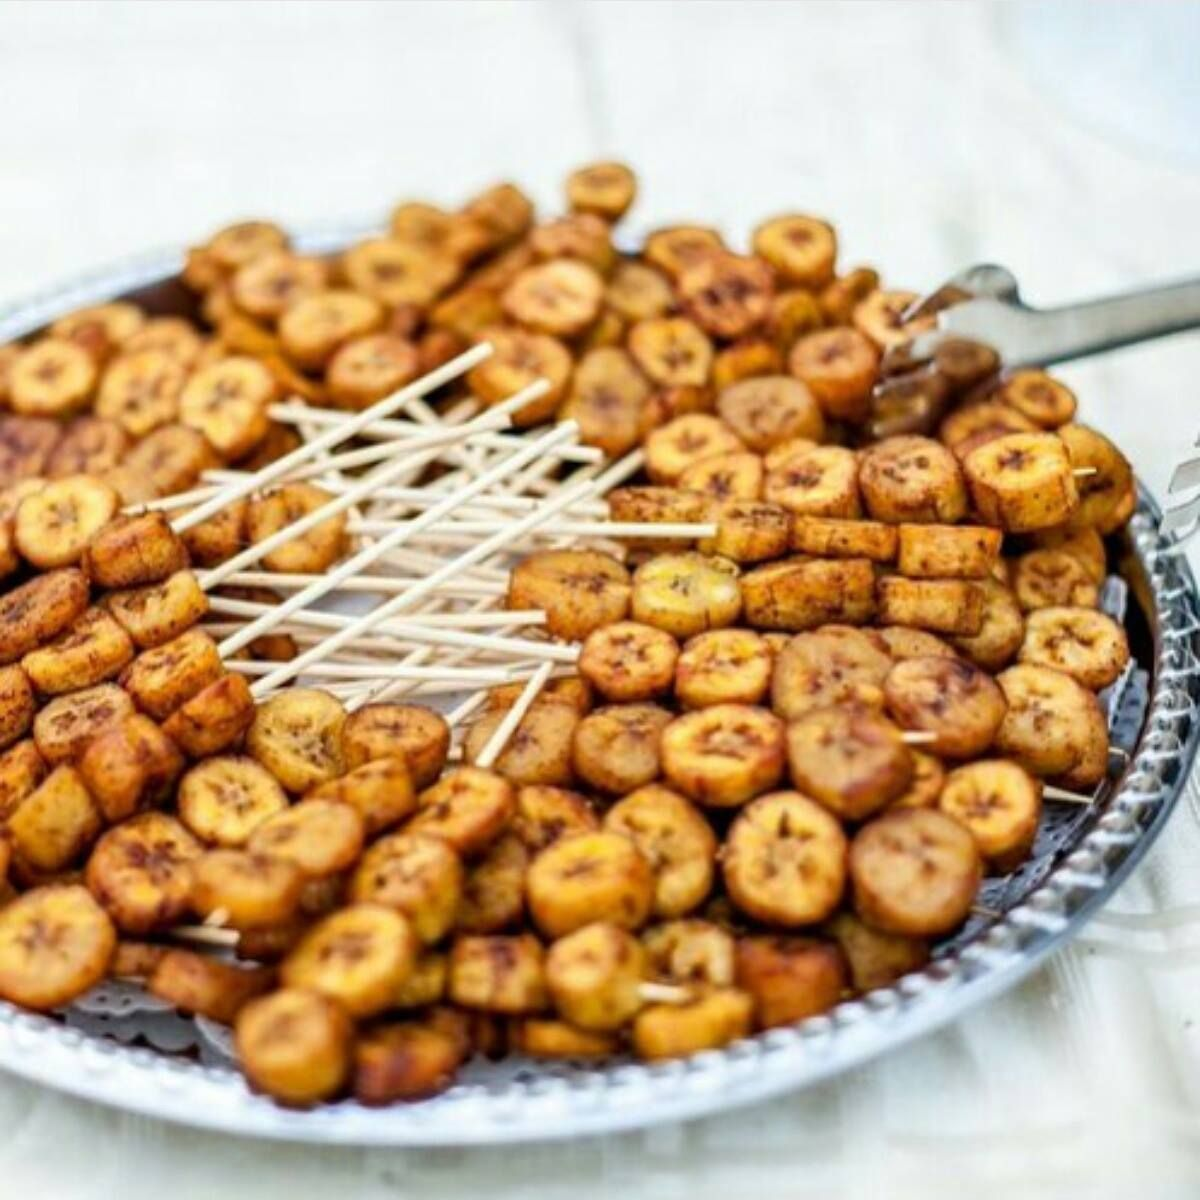 Spic fried plantains on a stick kelewele on sticks ghana food spic fried plantains on a stick kelewele on sticks ghana food african food forumfinder Gallery